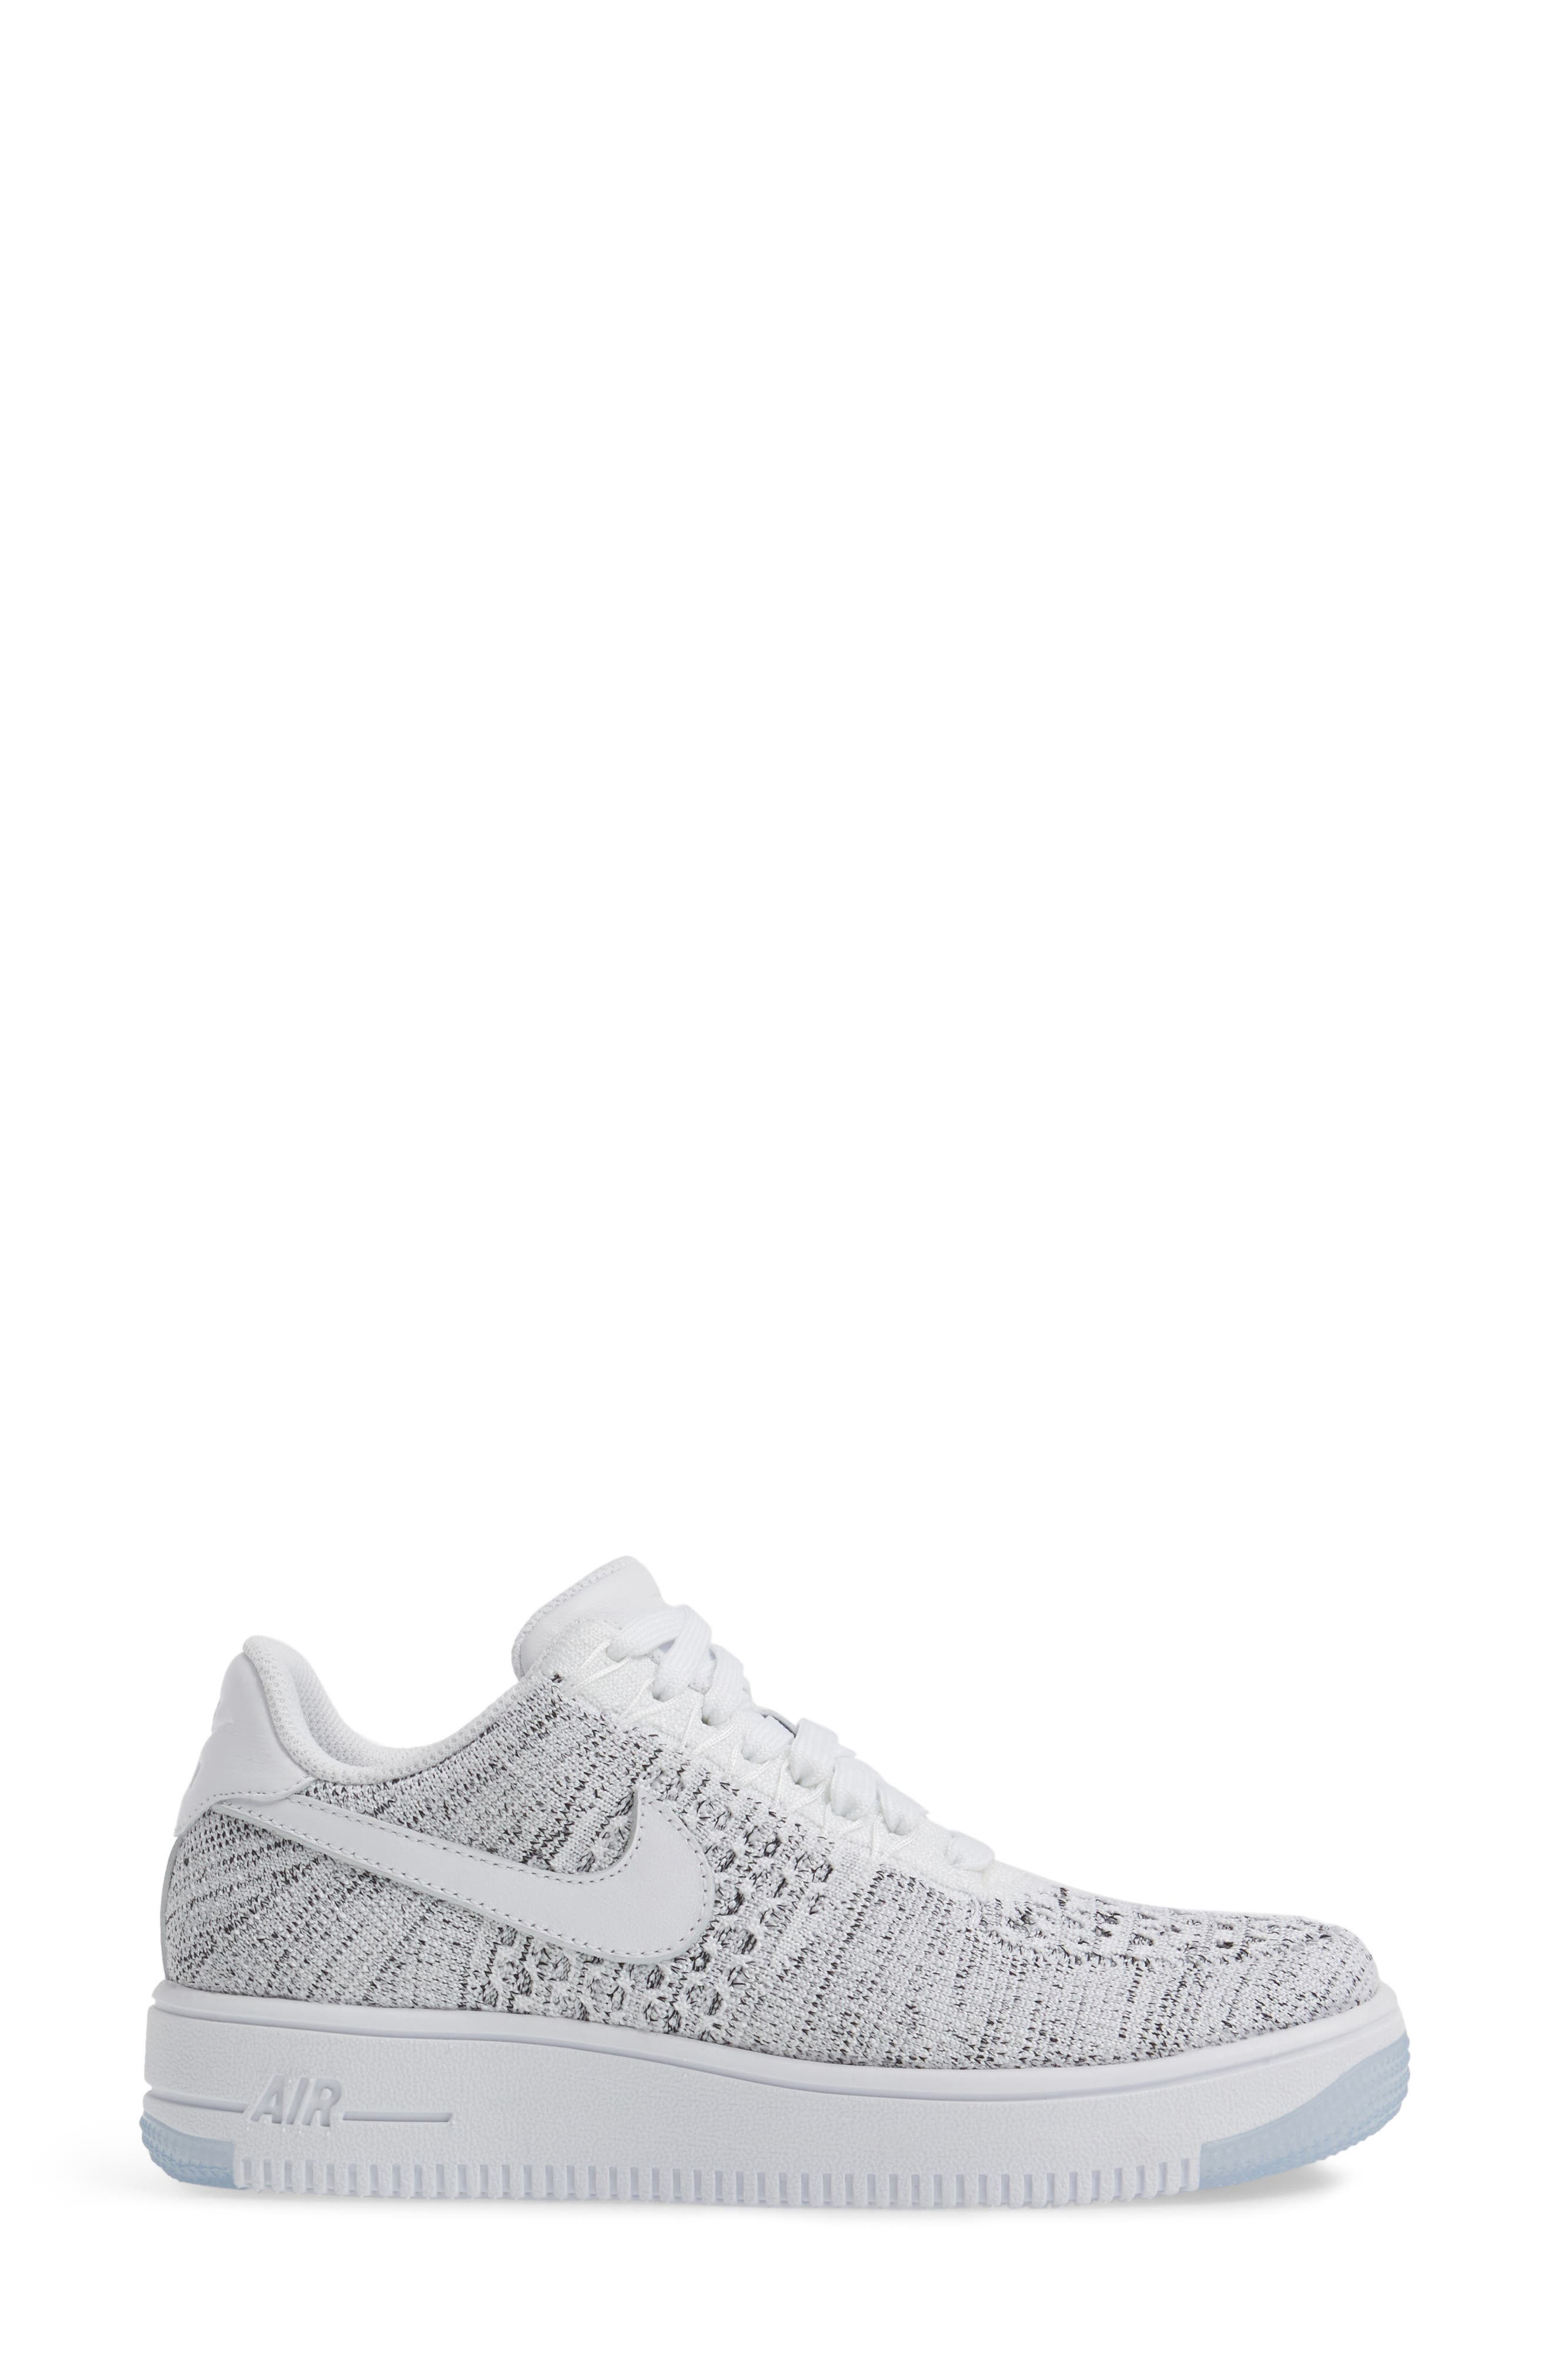 'Air Force 1 Flyknit Low' Sneaker,                             Alternate thumbnail 19, color,